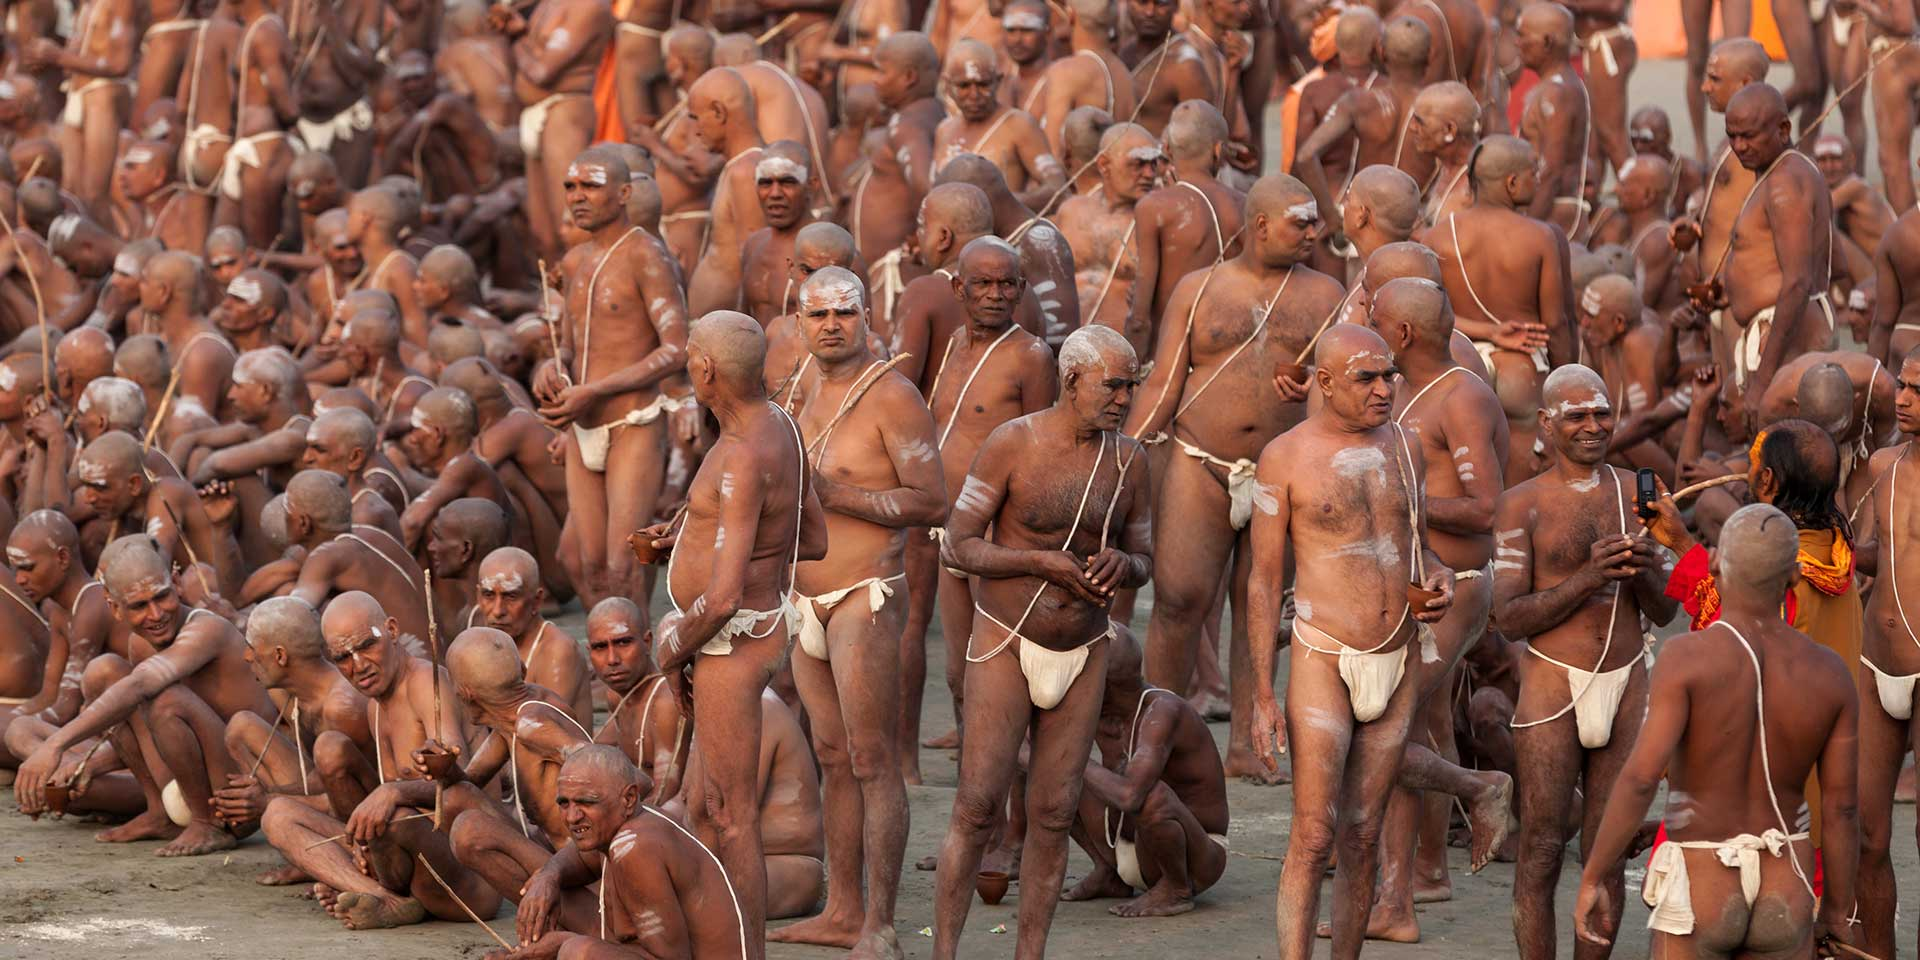 nude-in-allahabad-nud-picture-of-boys